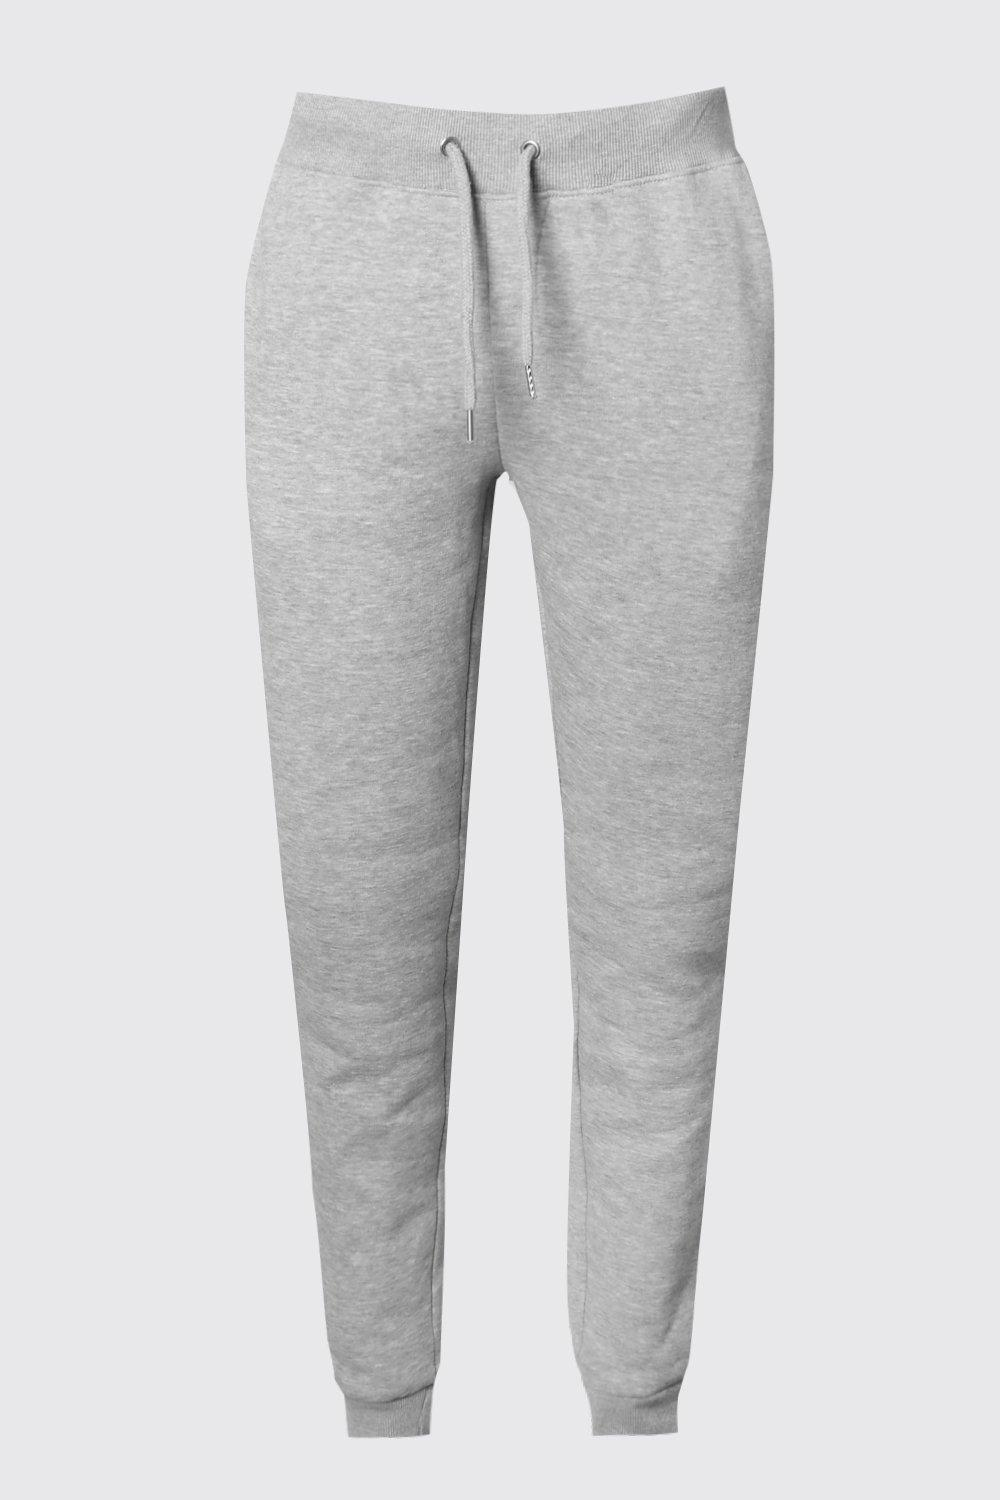 Fleece Fit Joggers grey Slim Slim Fit Fleece wYqnXWttI